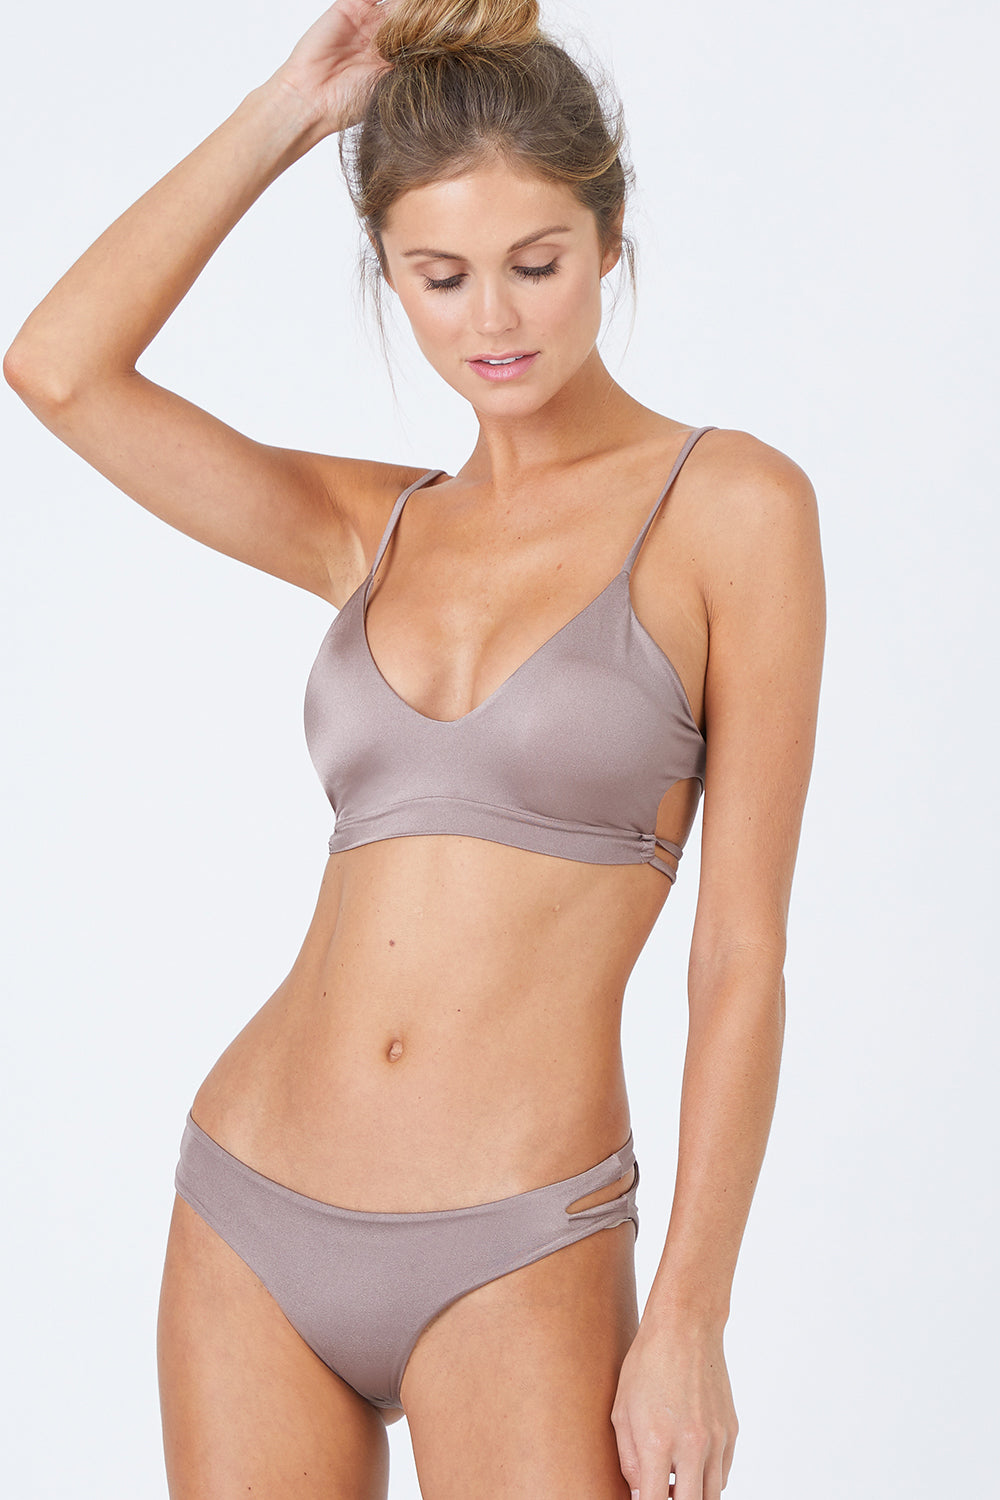 Pacific Cut Out Bralette Bikini Top - Sparly Taupe